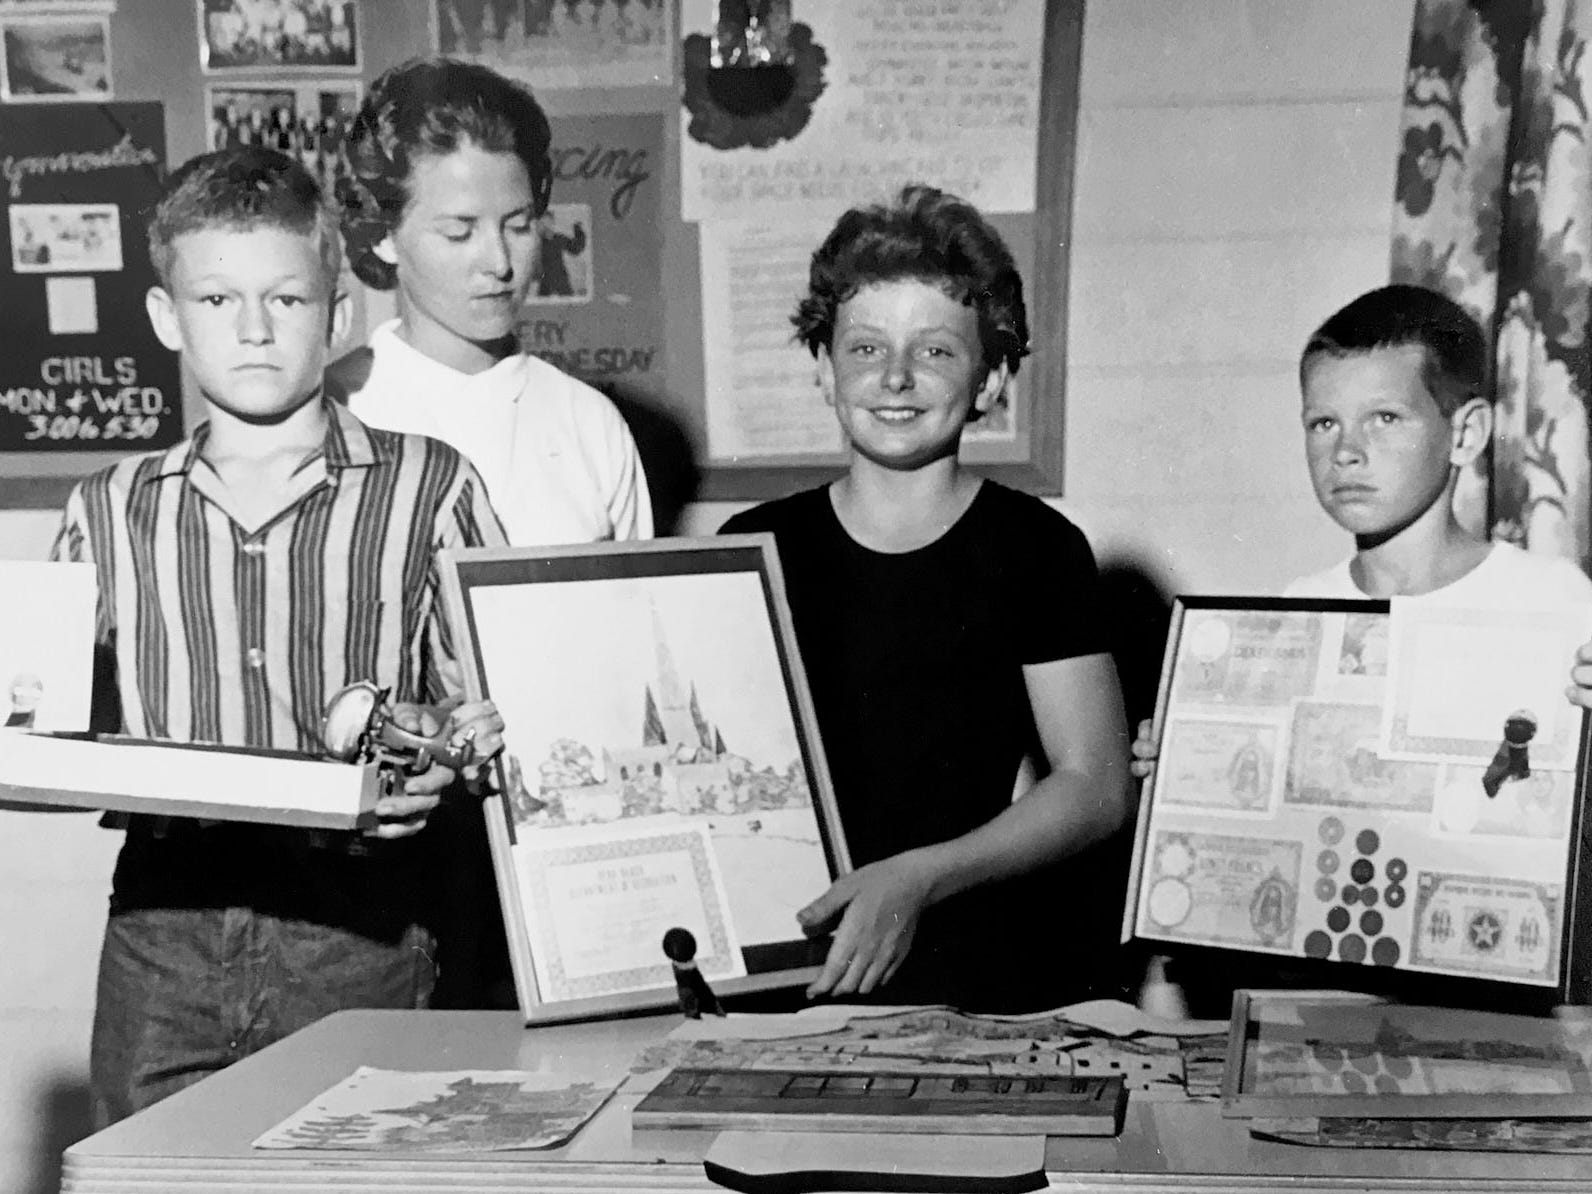 Douglas McPherson, Gwen Loy (judge), Janice Porter and Arthur Weeks show off their winning entires in some type of a contest, unknown year.